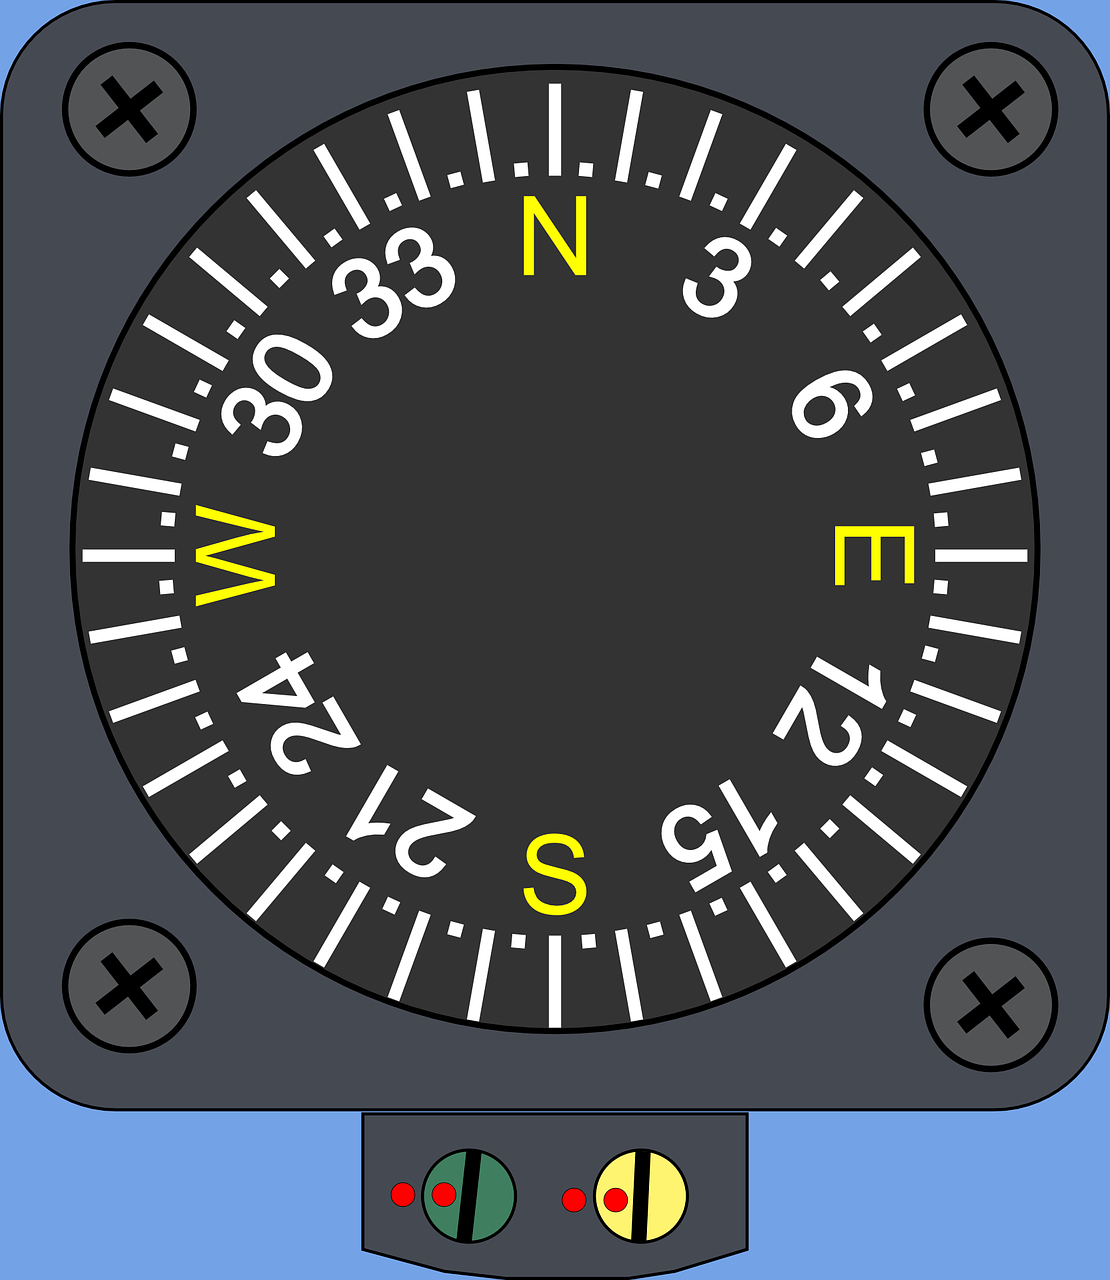 compass,navigational,instrument,directions,locating,locations,stationary,frame,north,south,east,west,navigate,locate,navigating,four,cardinal,points,device,free vector graphics,free pictures, free photos, free images, royalty free, free illustrations, public domain